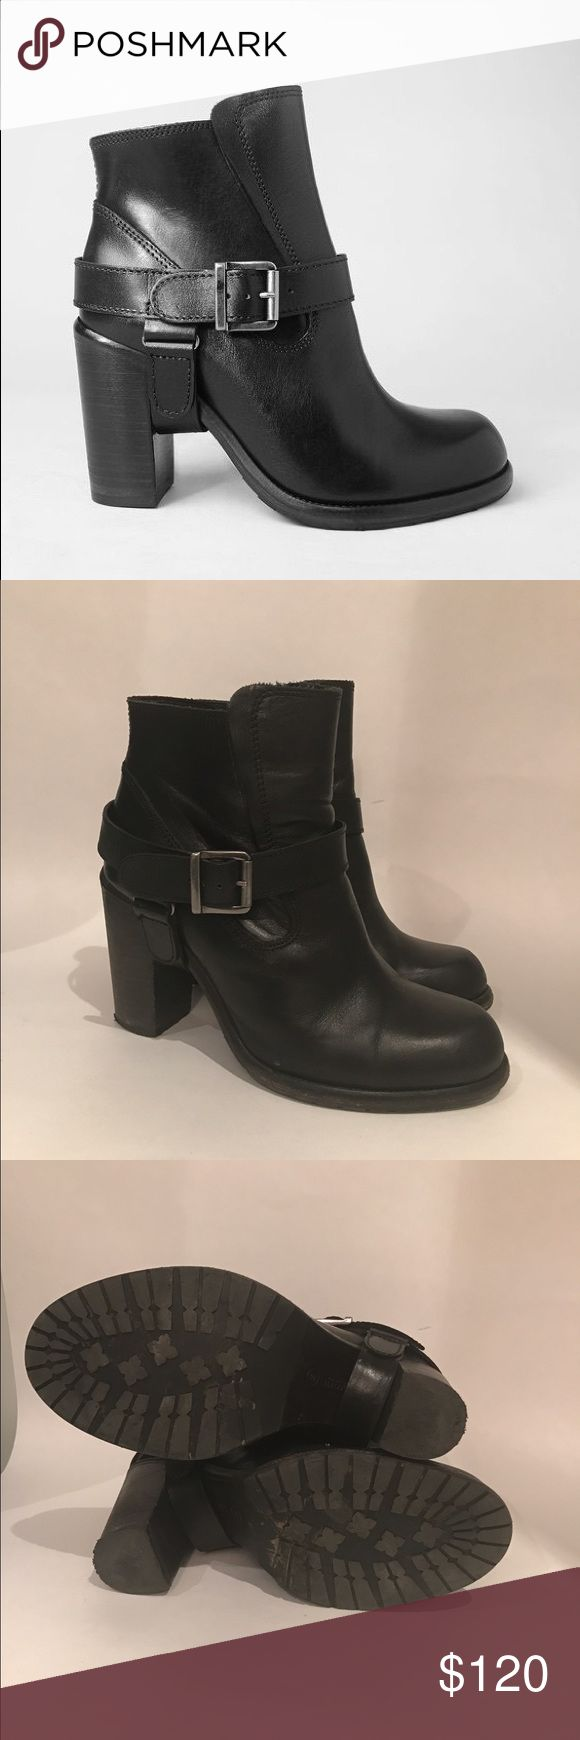 All Saints Jules Boots Great leather block heel black boots. Interesting leather details. Seen on Behati Prinsloo! Worn but in good condition. Sz 40 All Saints Shoes Ankle Boots & Booties